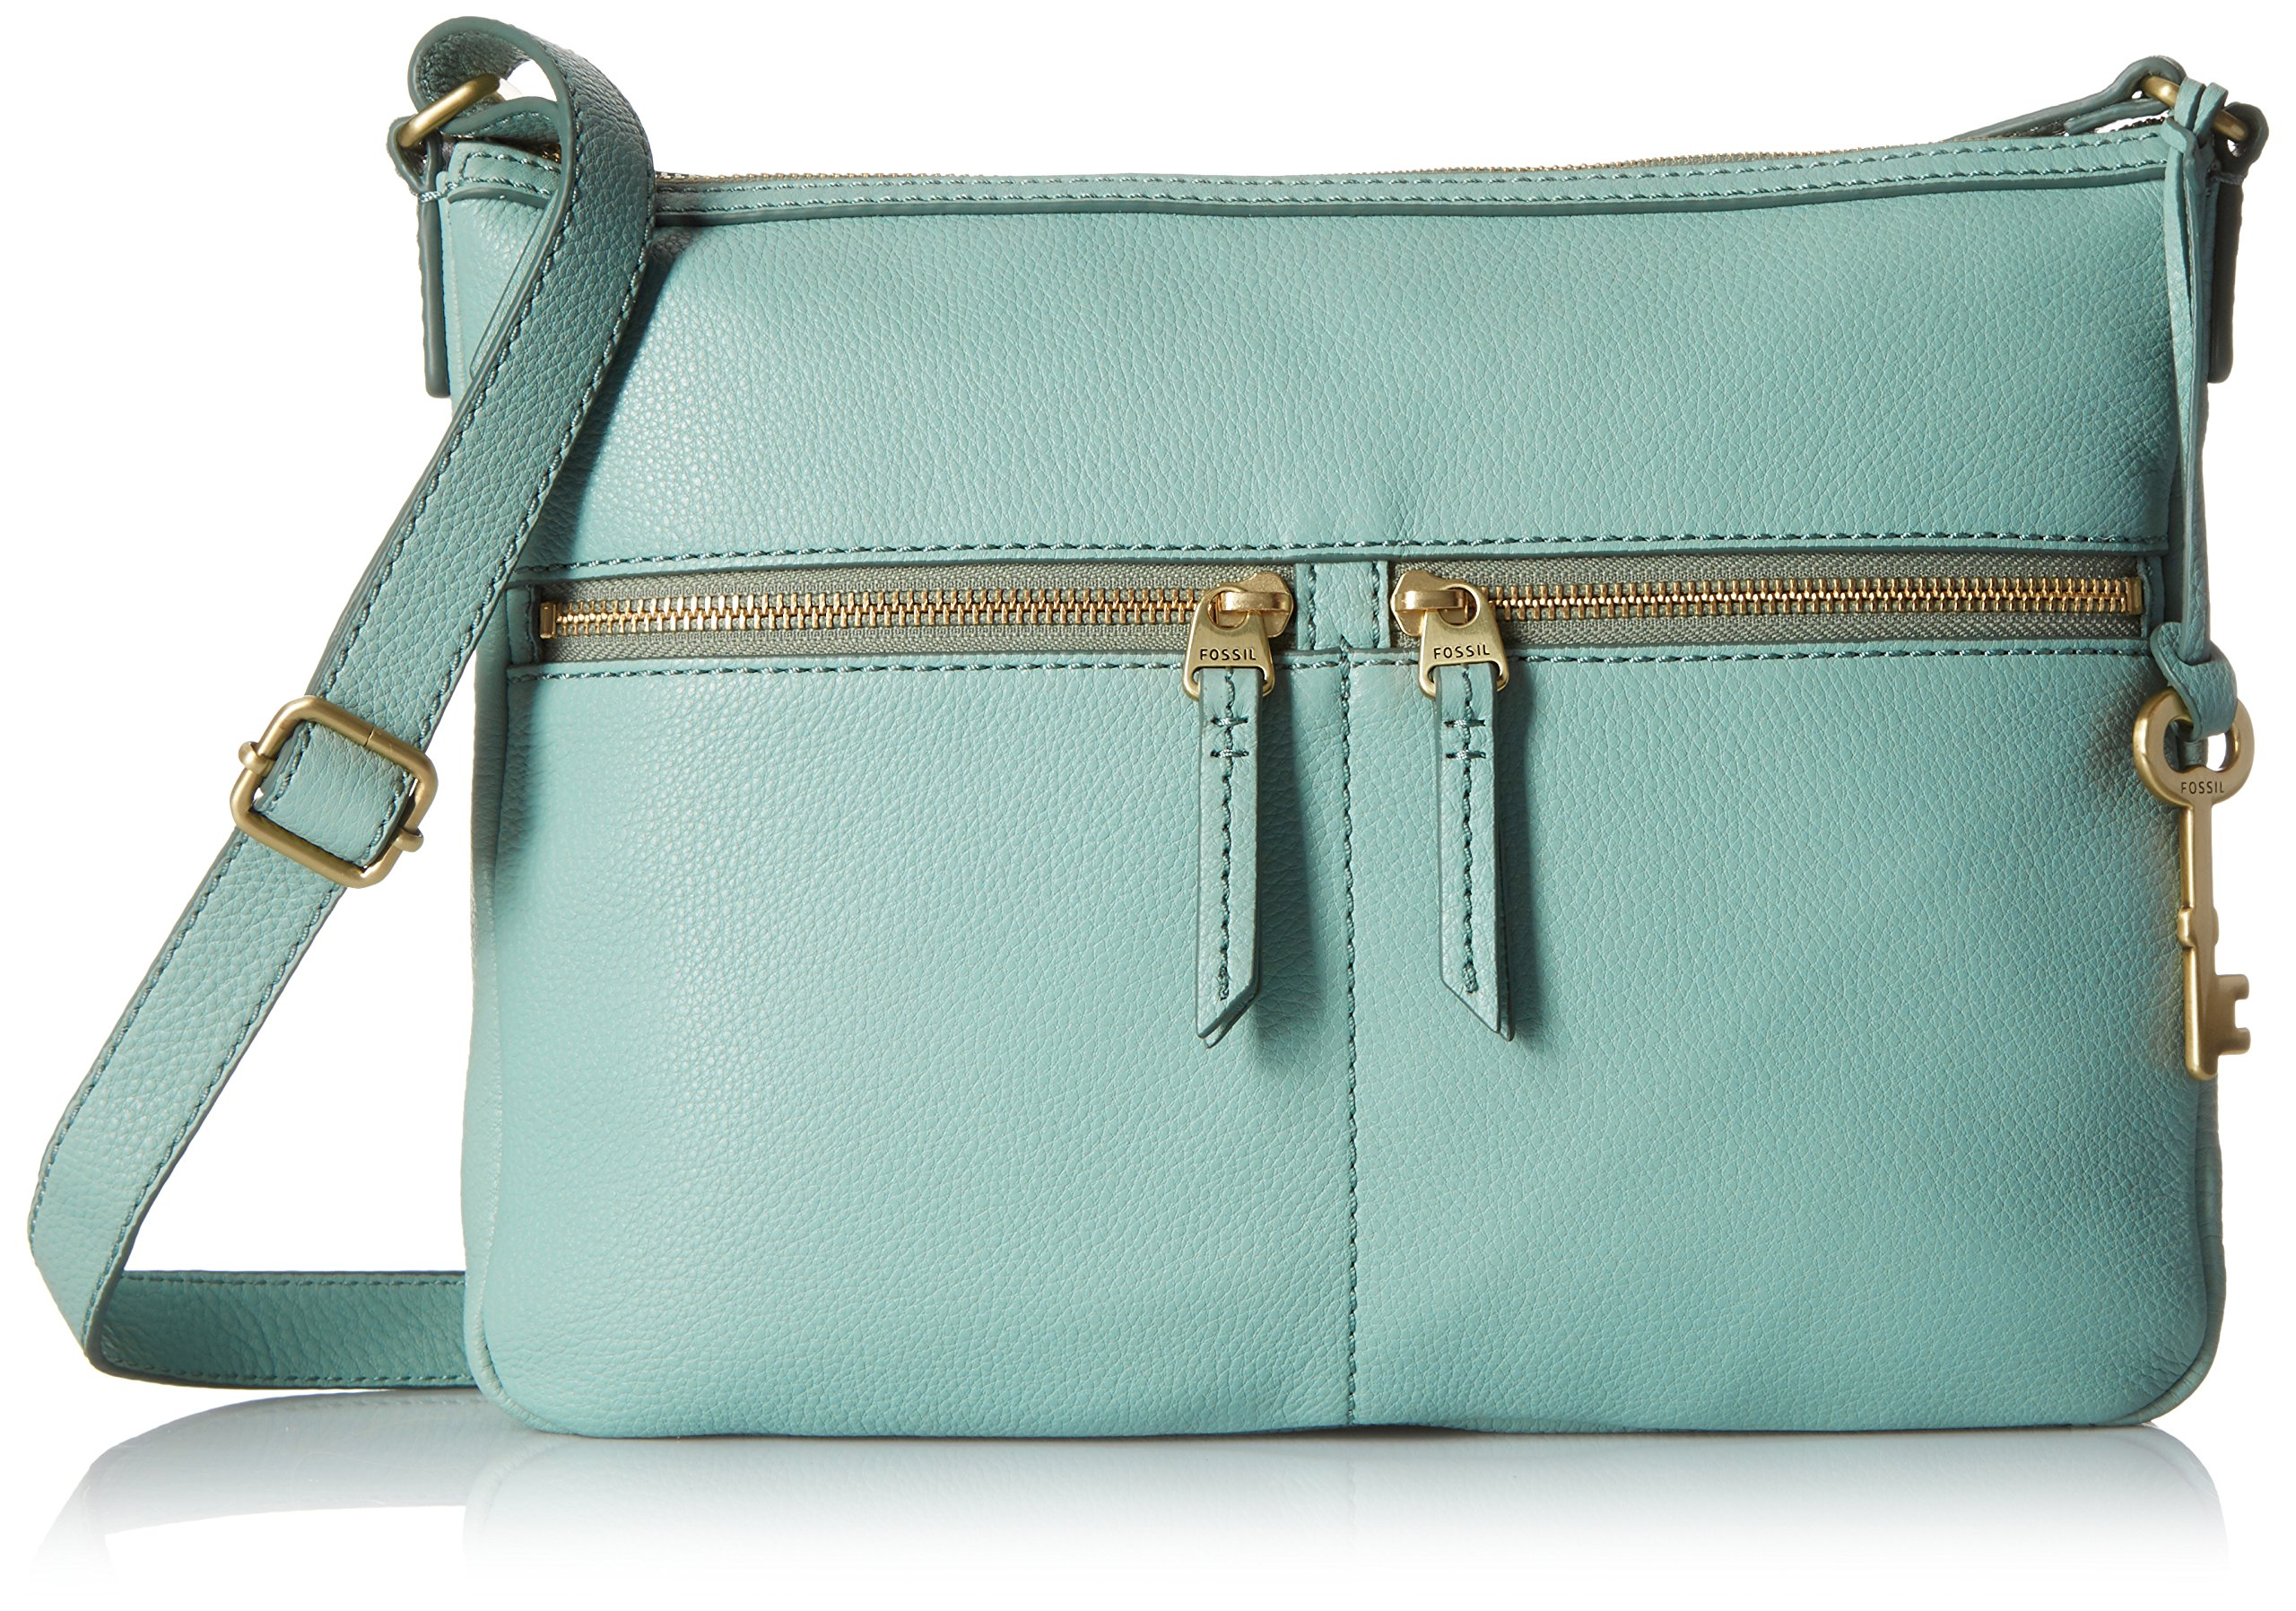 Fossil Erin Crossbody, Sea Glass, One Size by Fossil